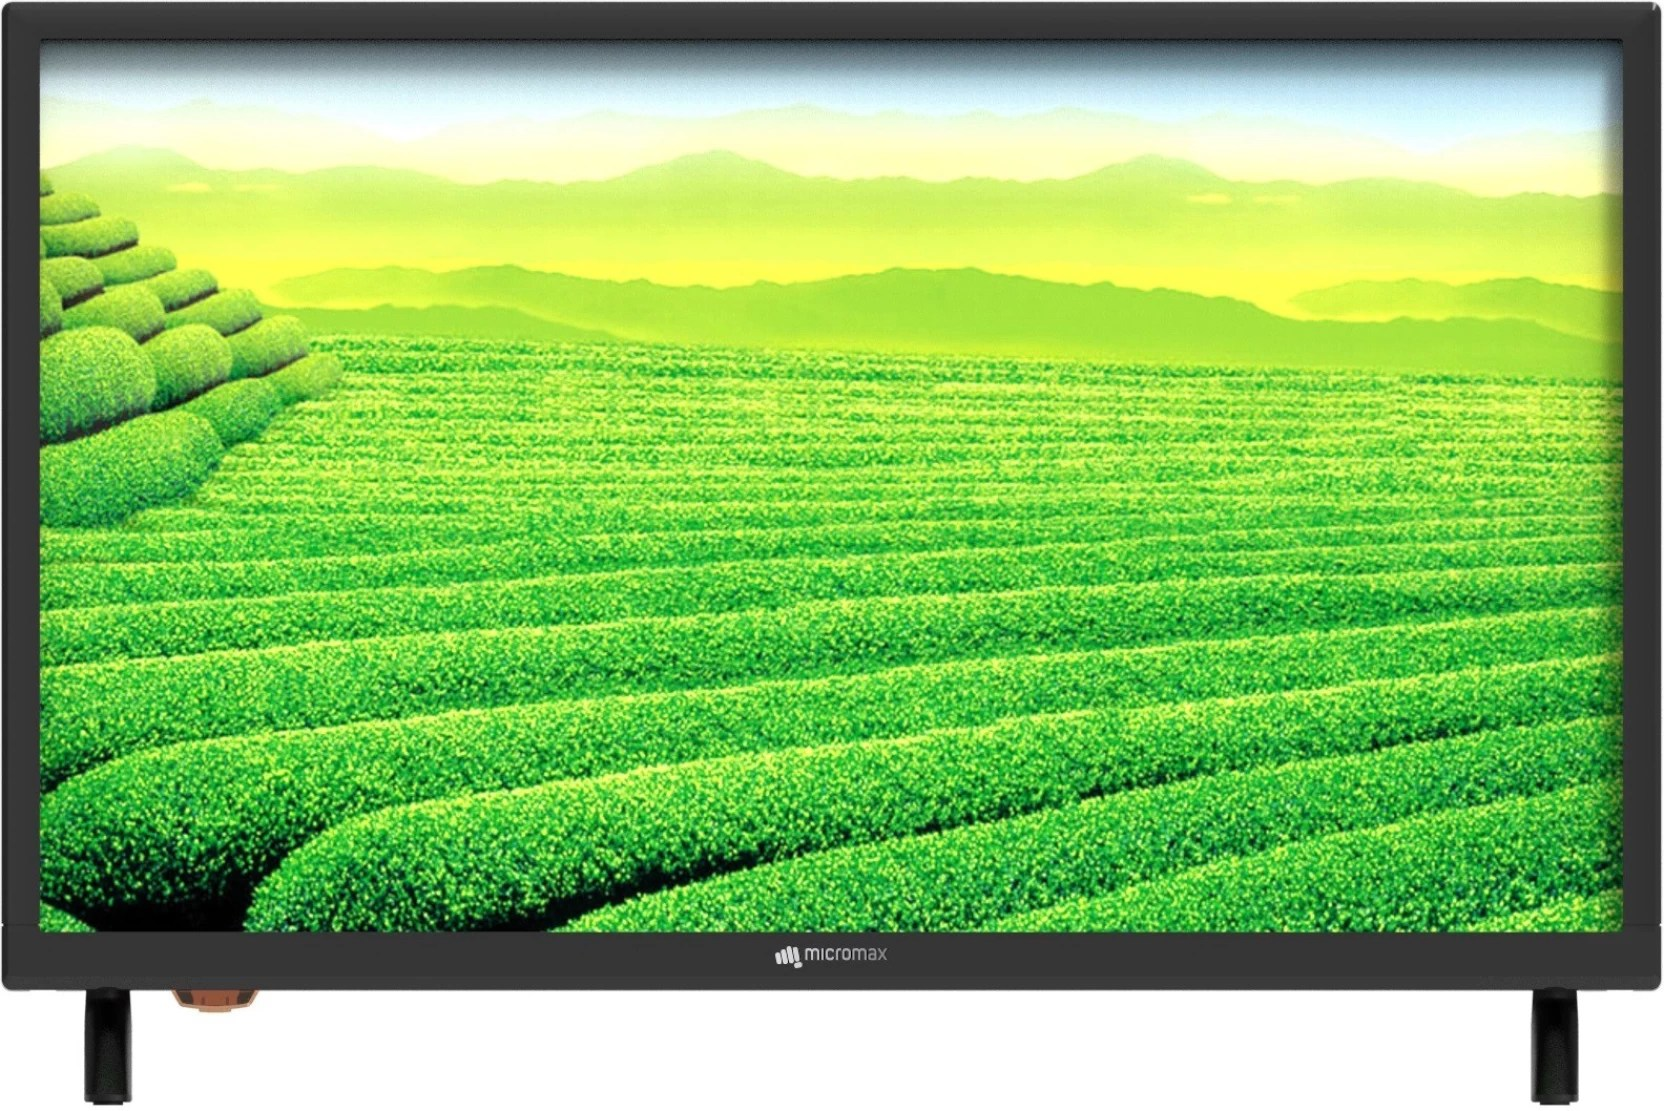 60cm Tv Micromax 60cm 23 6 Inch Full Hd Led Tv